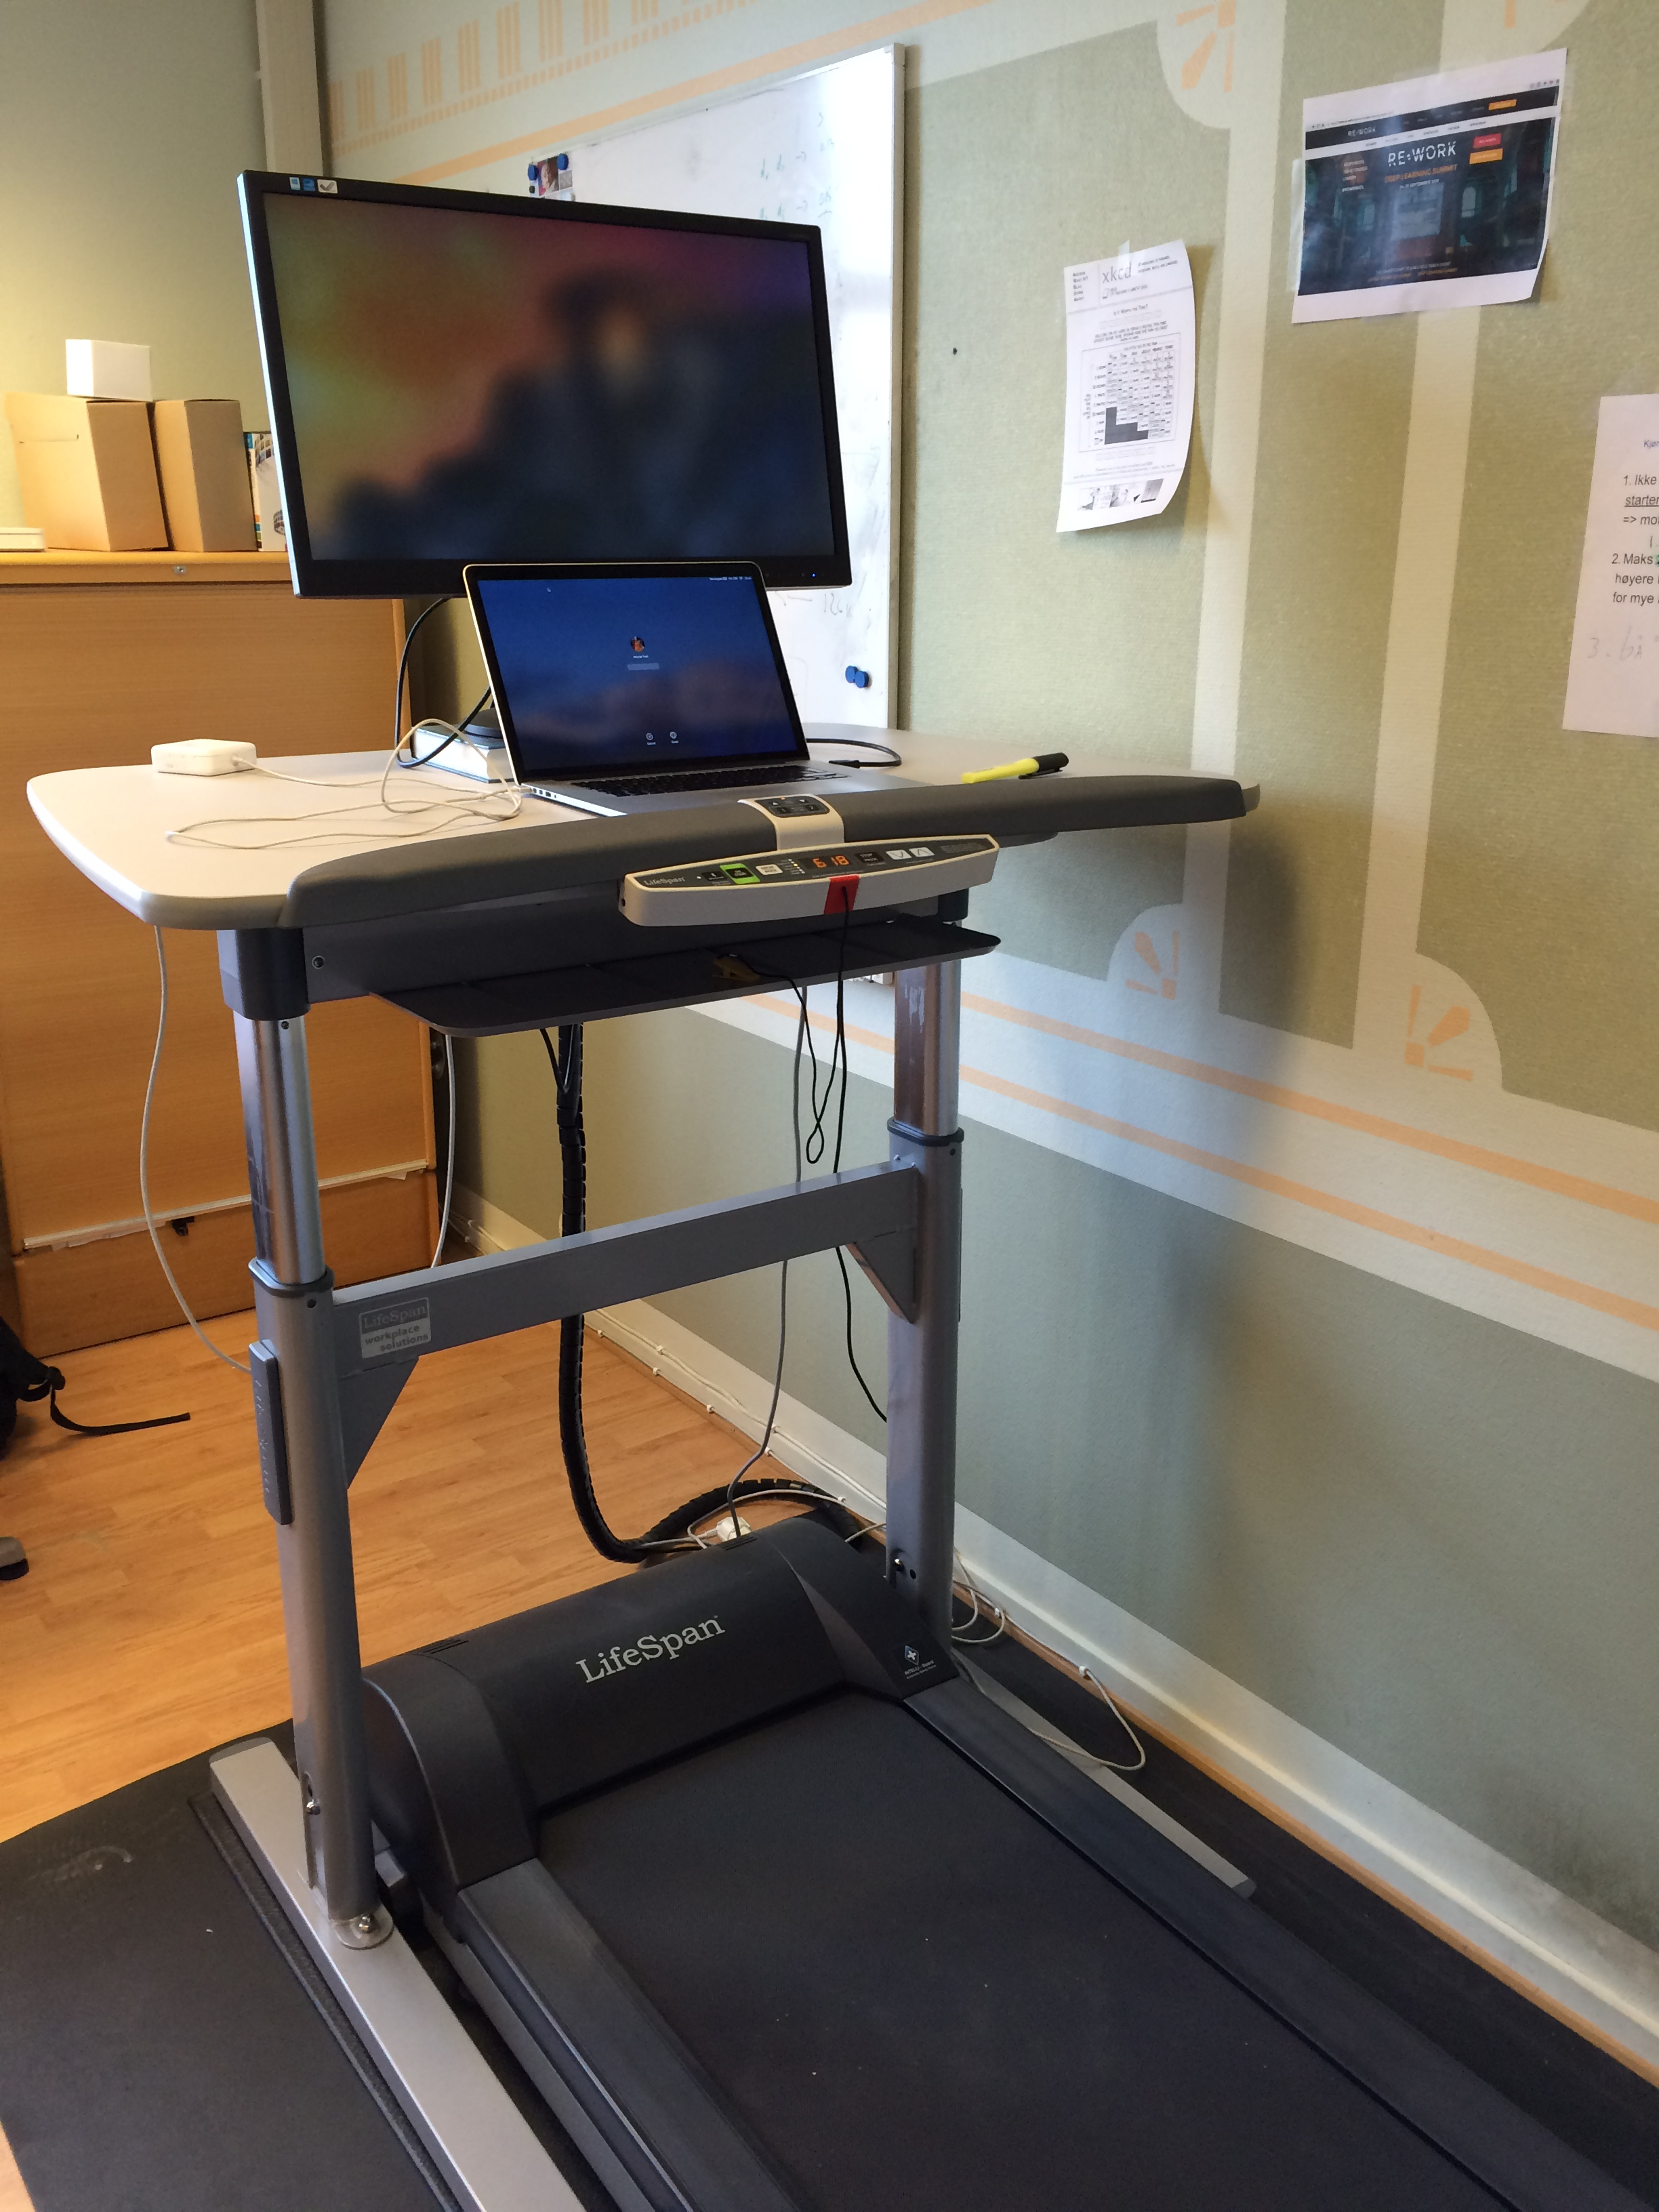 Treadmill Desks U2013 The Future Software Engineer Office Rig?